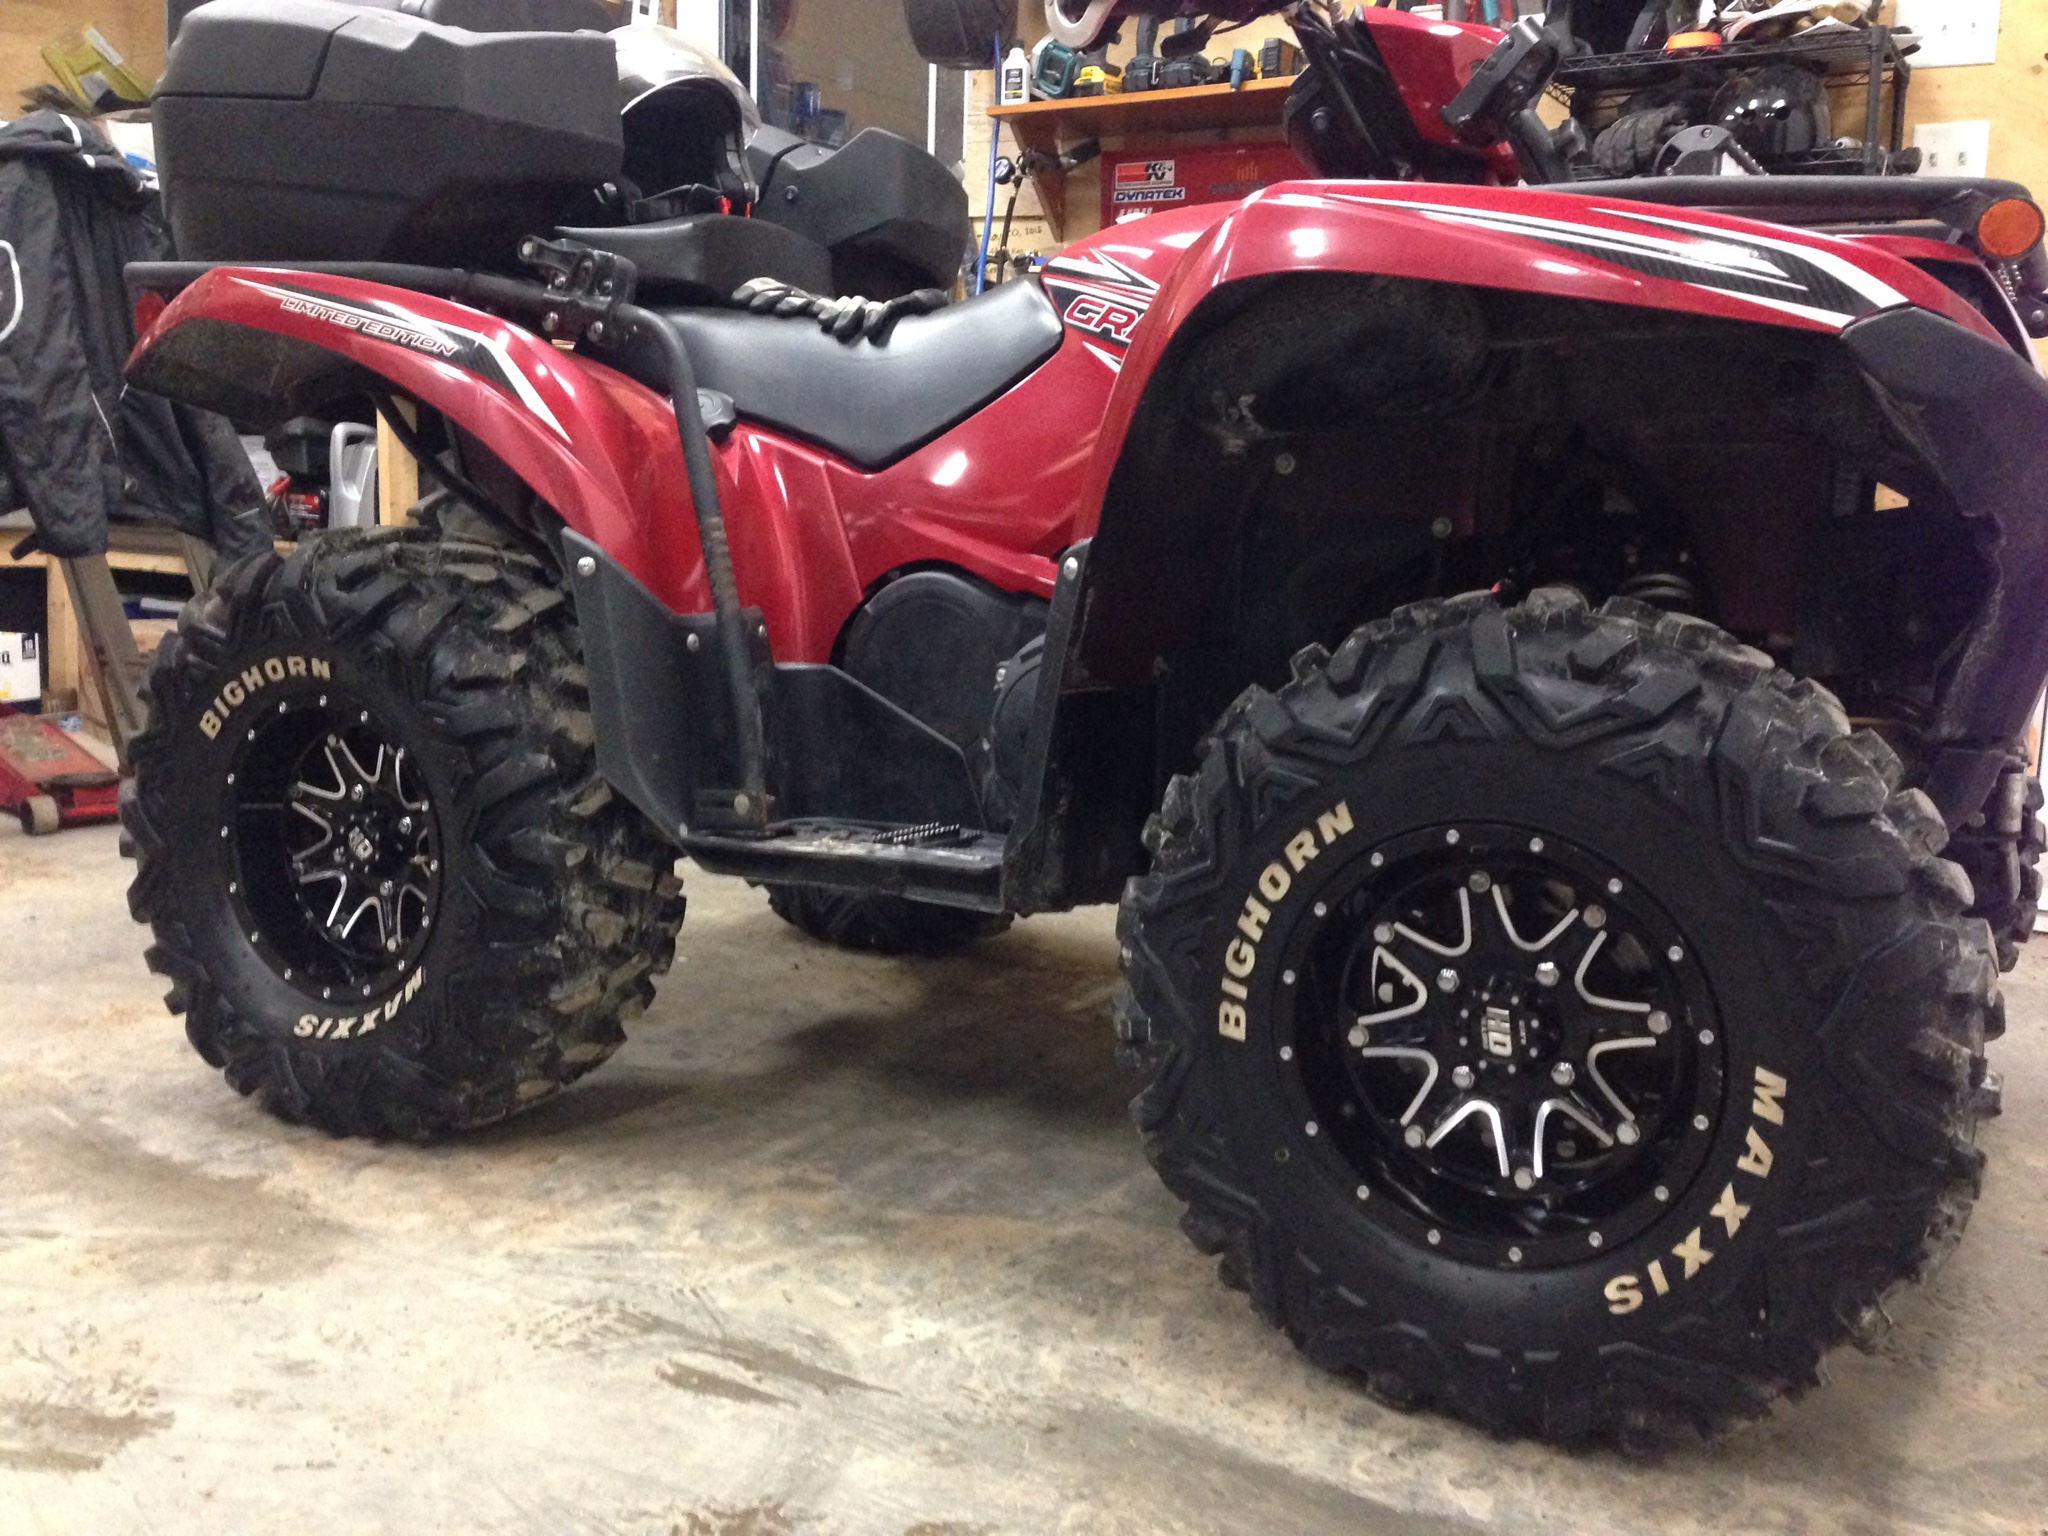 Bighorns on 2016 grizzly - Yamaha Grizzly ATV Forum